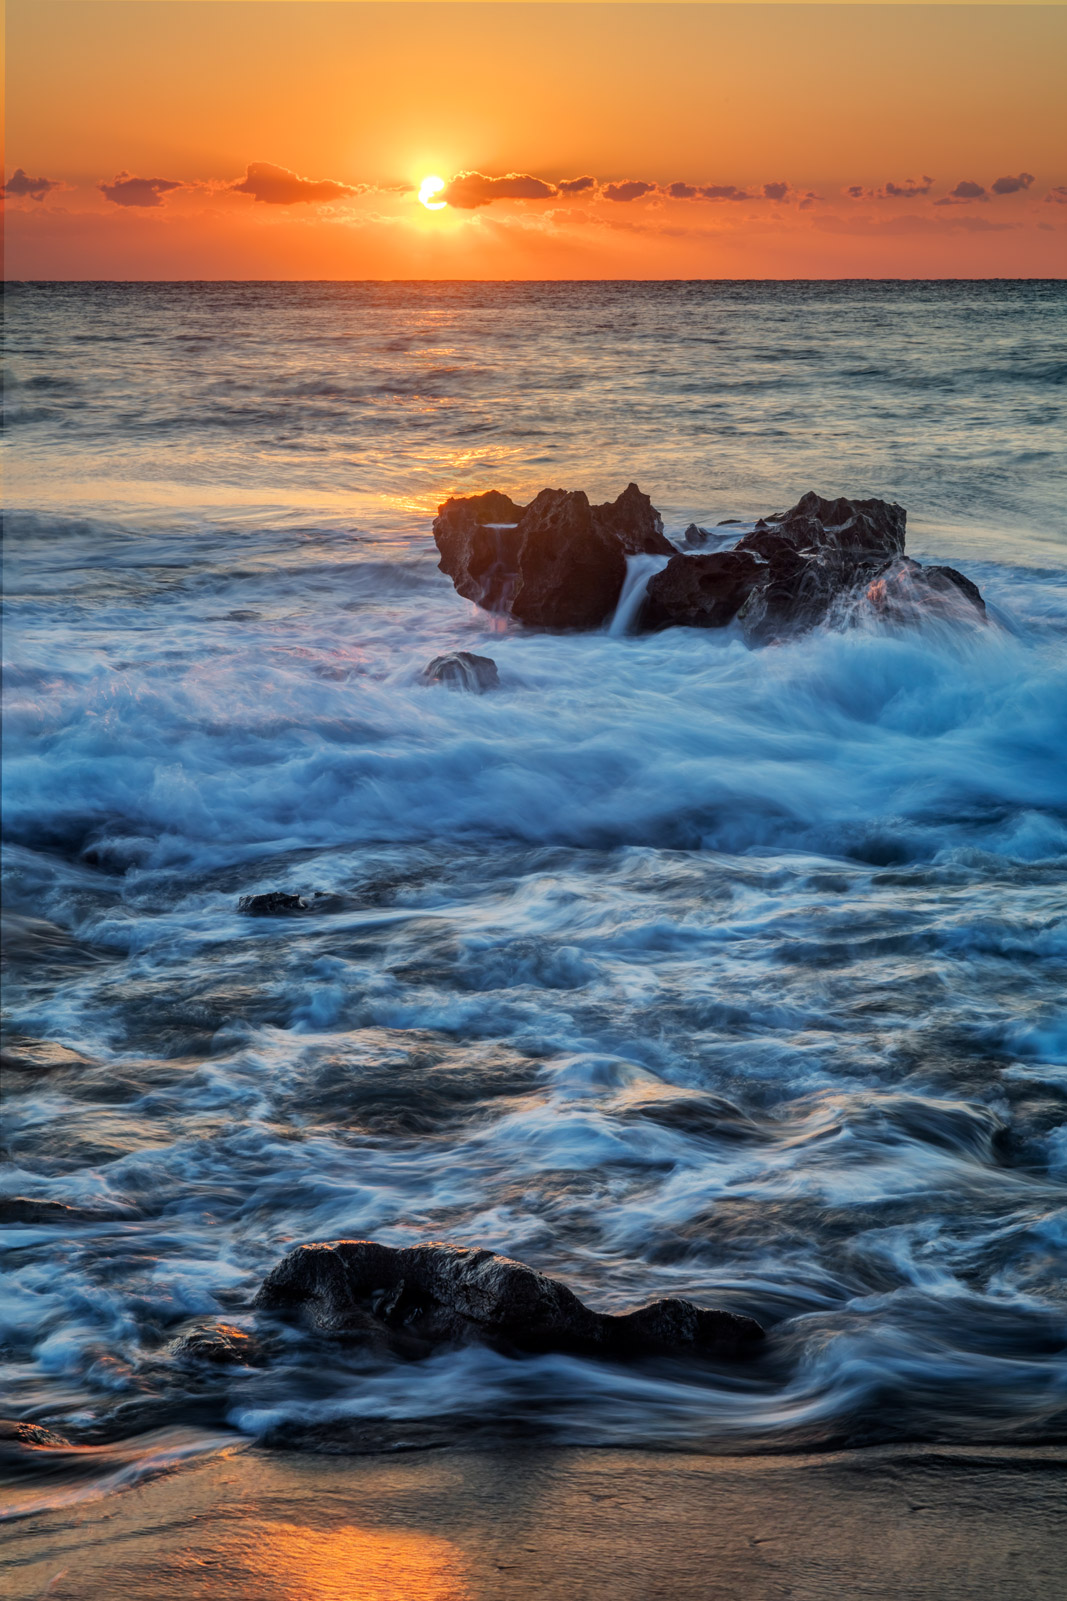 A Limited Edition, Fine Art photograph of a Florida sunrise over the rocky Atlantic Coast and swirling waves at Coral Cove, Florida...